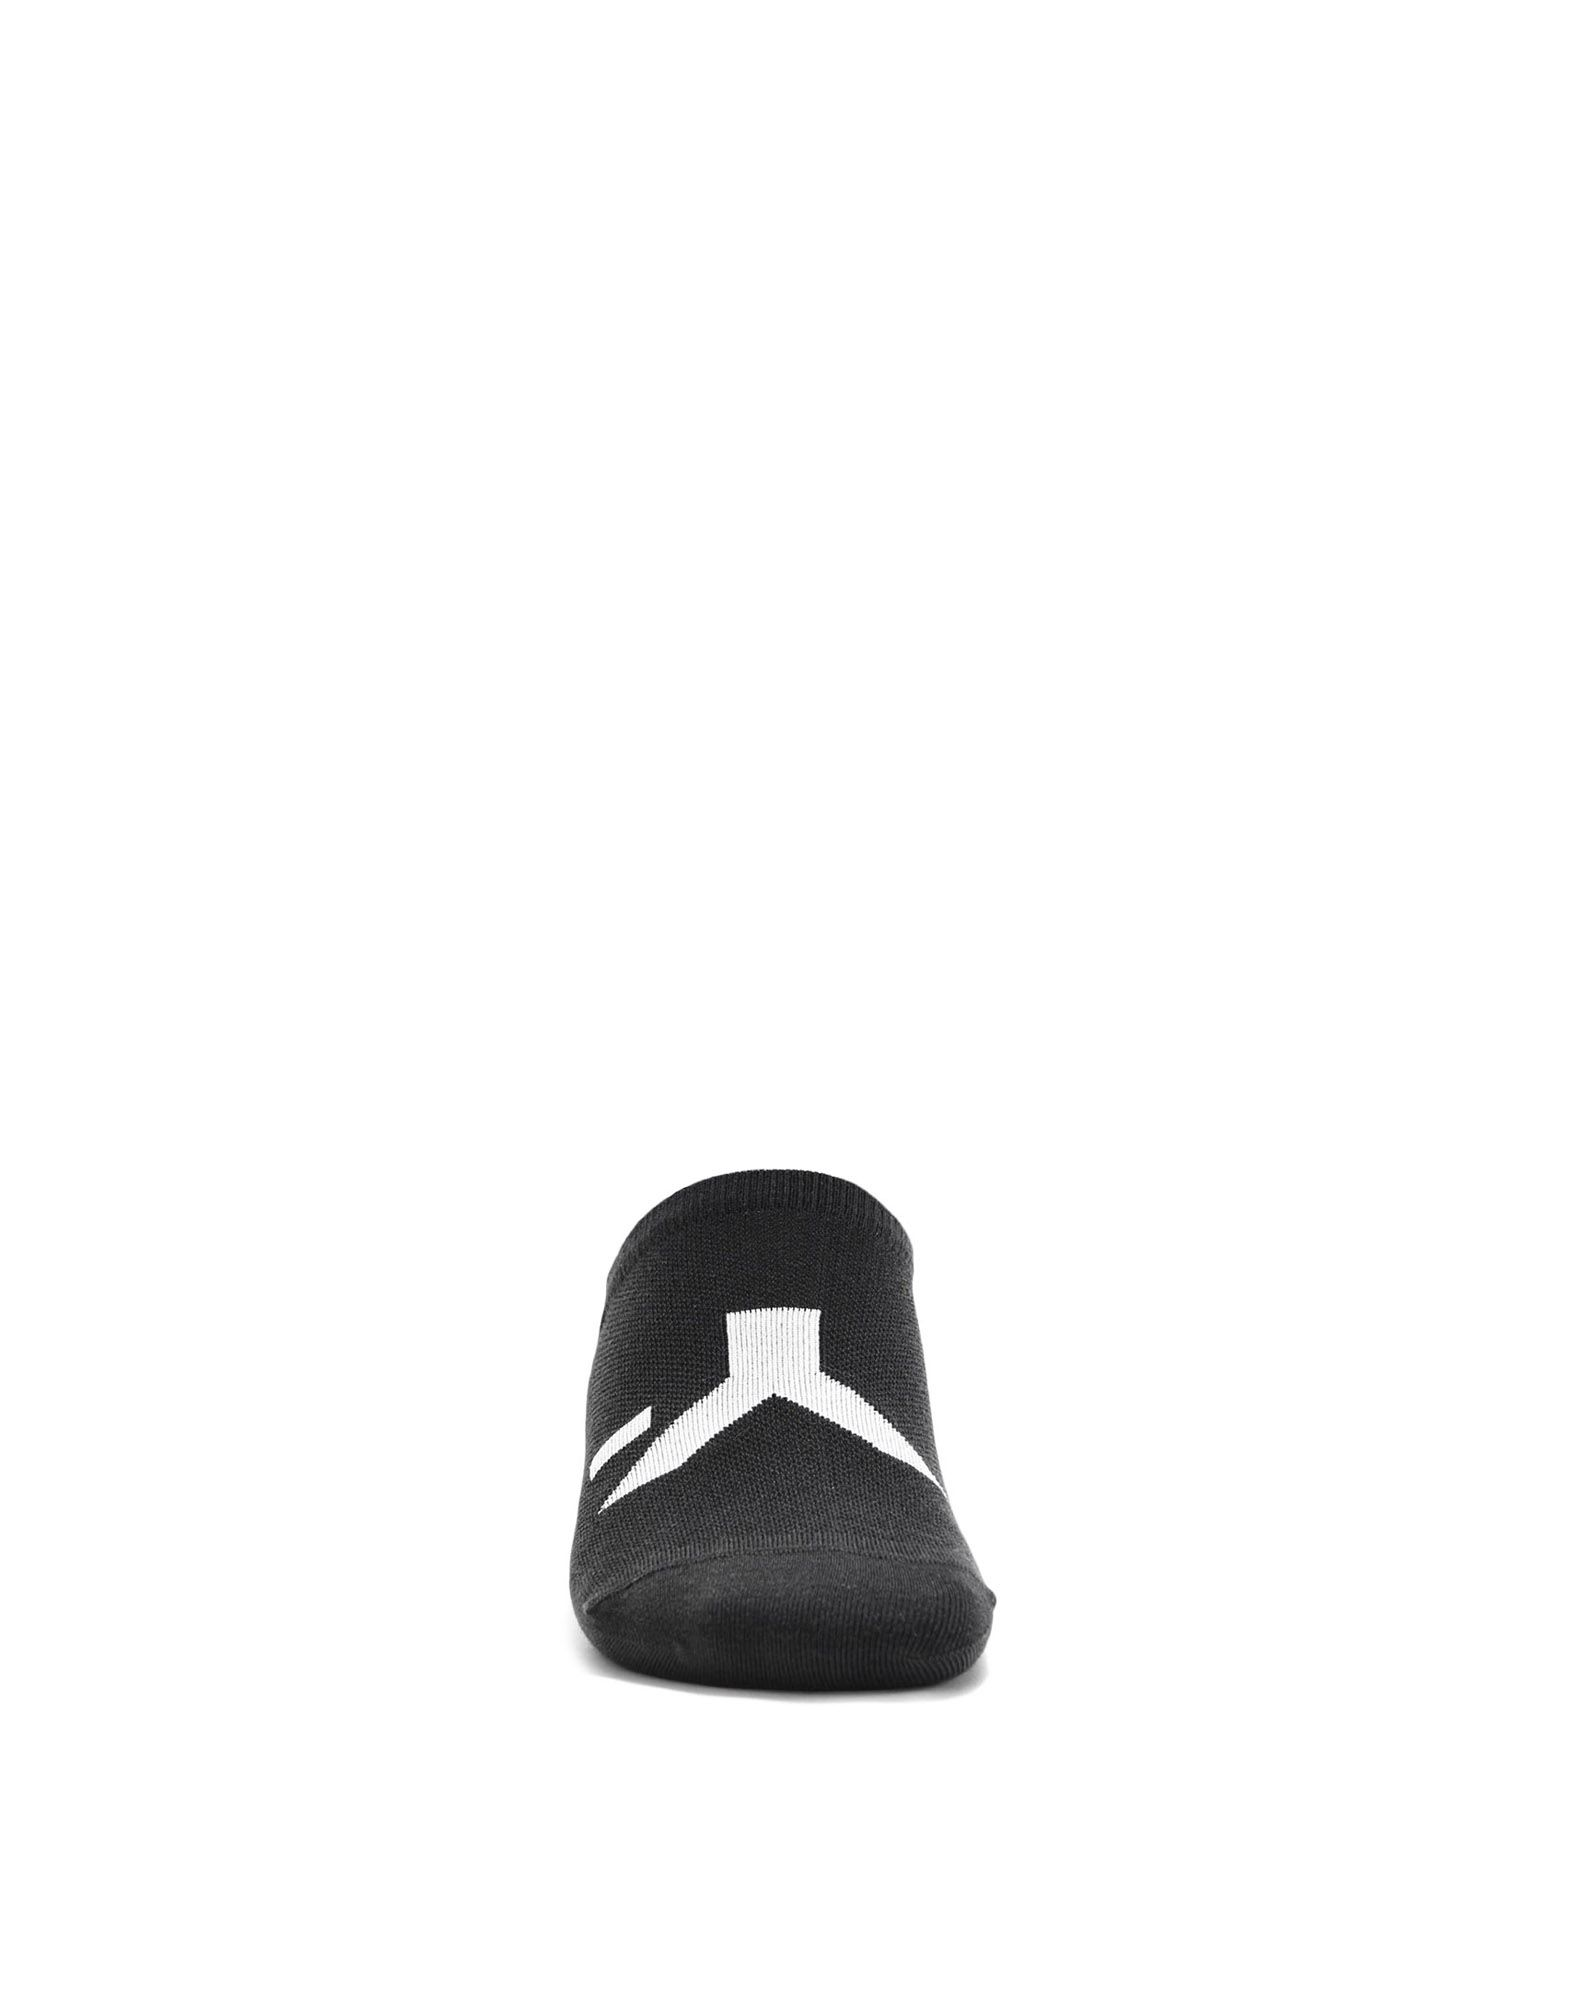 Y-3 Y-3 INVISOCKS Invisible Sock E r